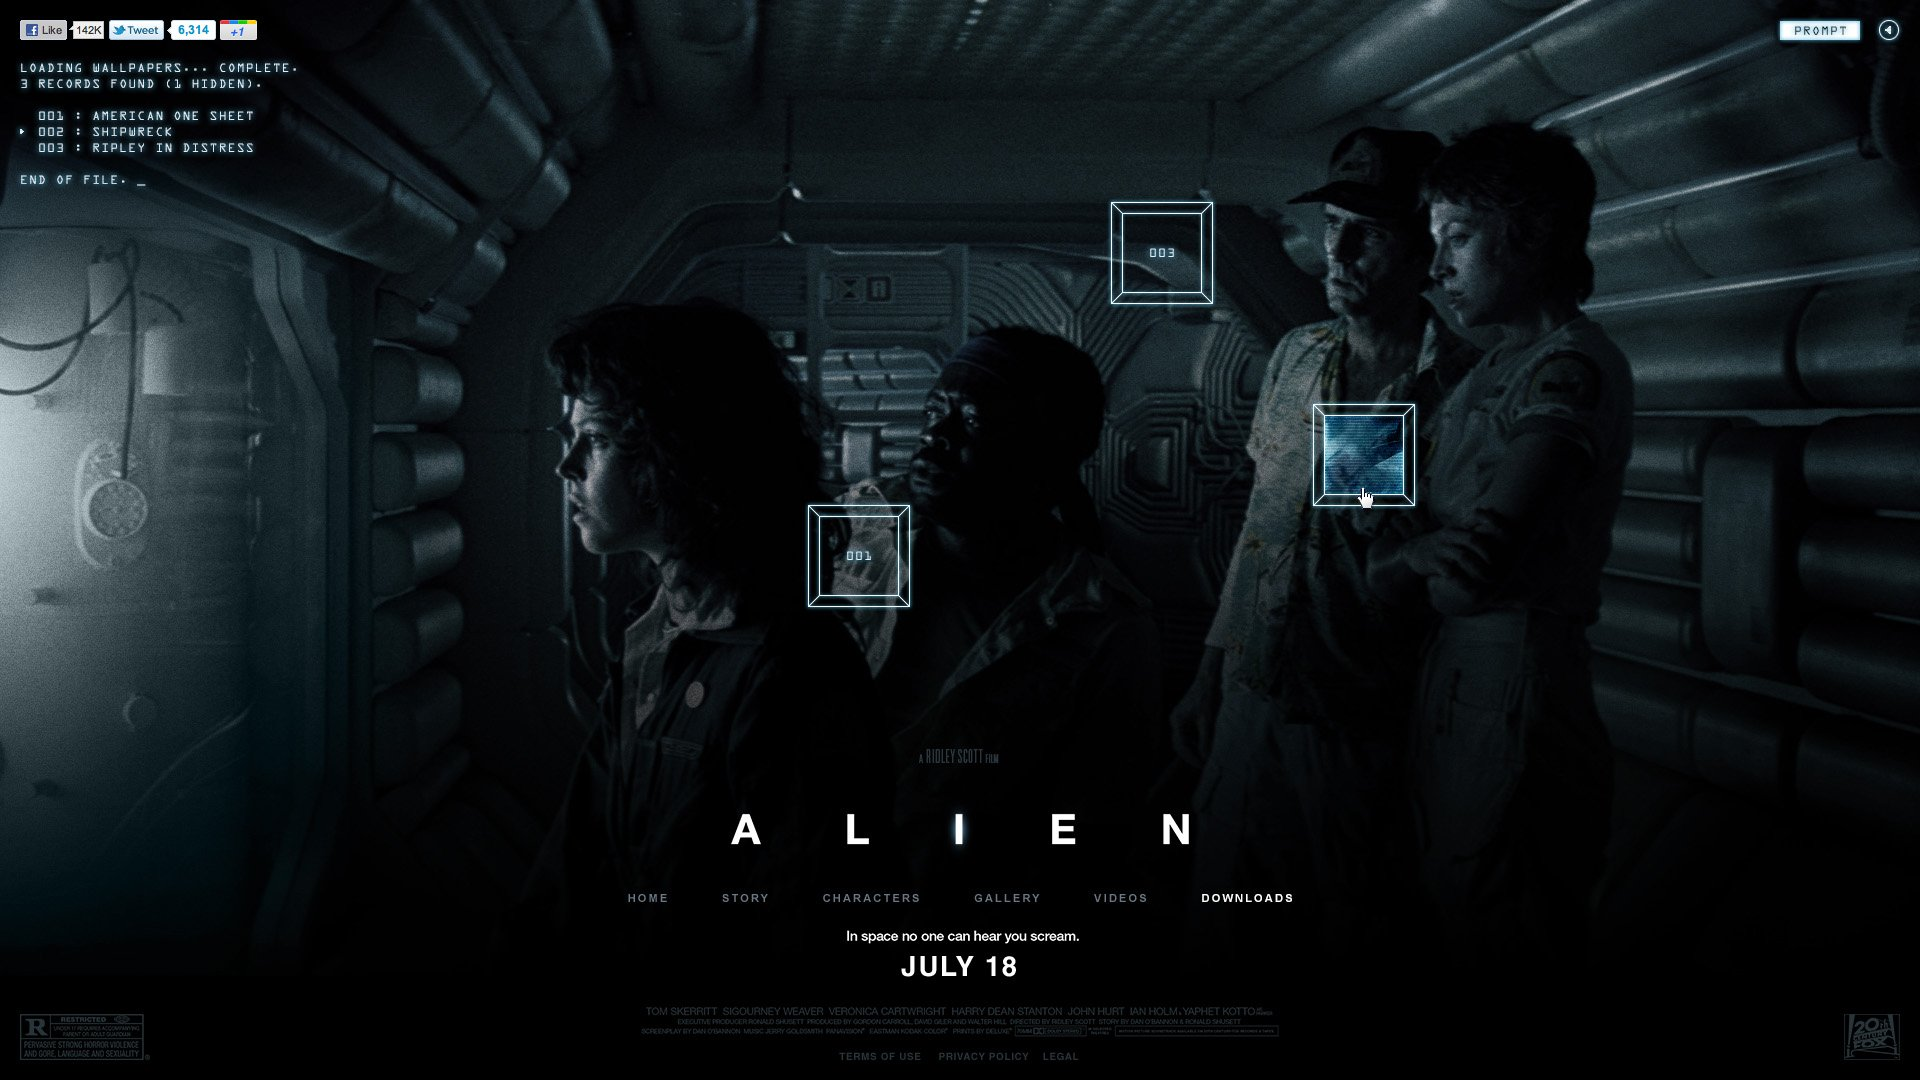 Download Alien New Latest Movie HD Wallpaper Search more high 1920x1080